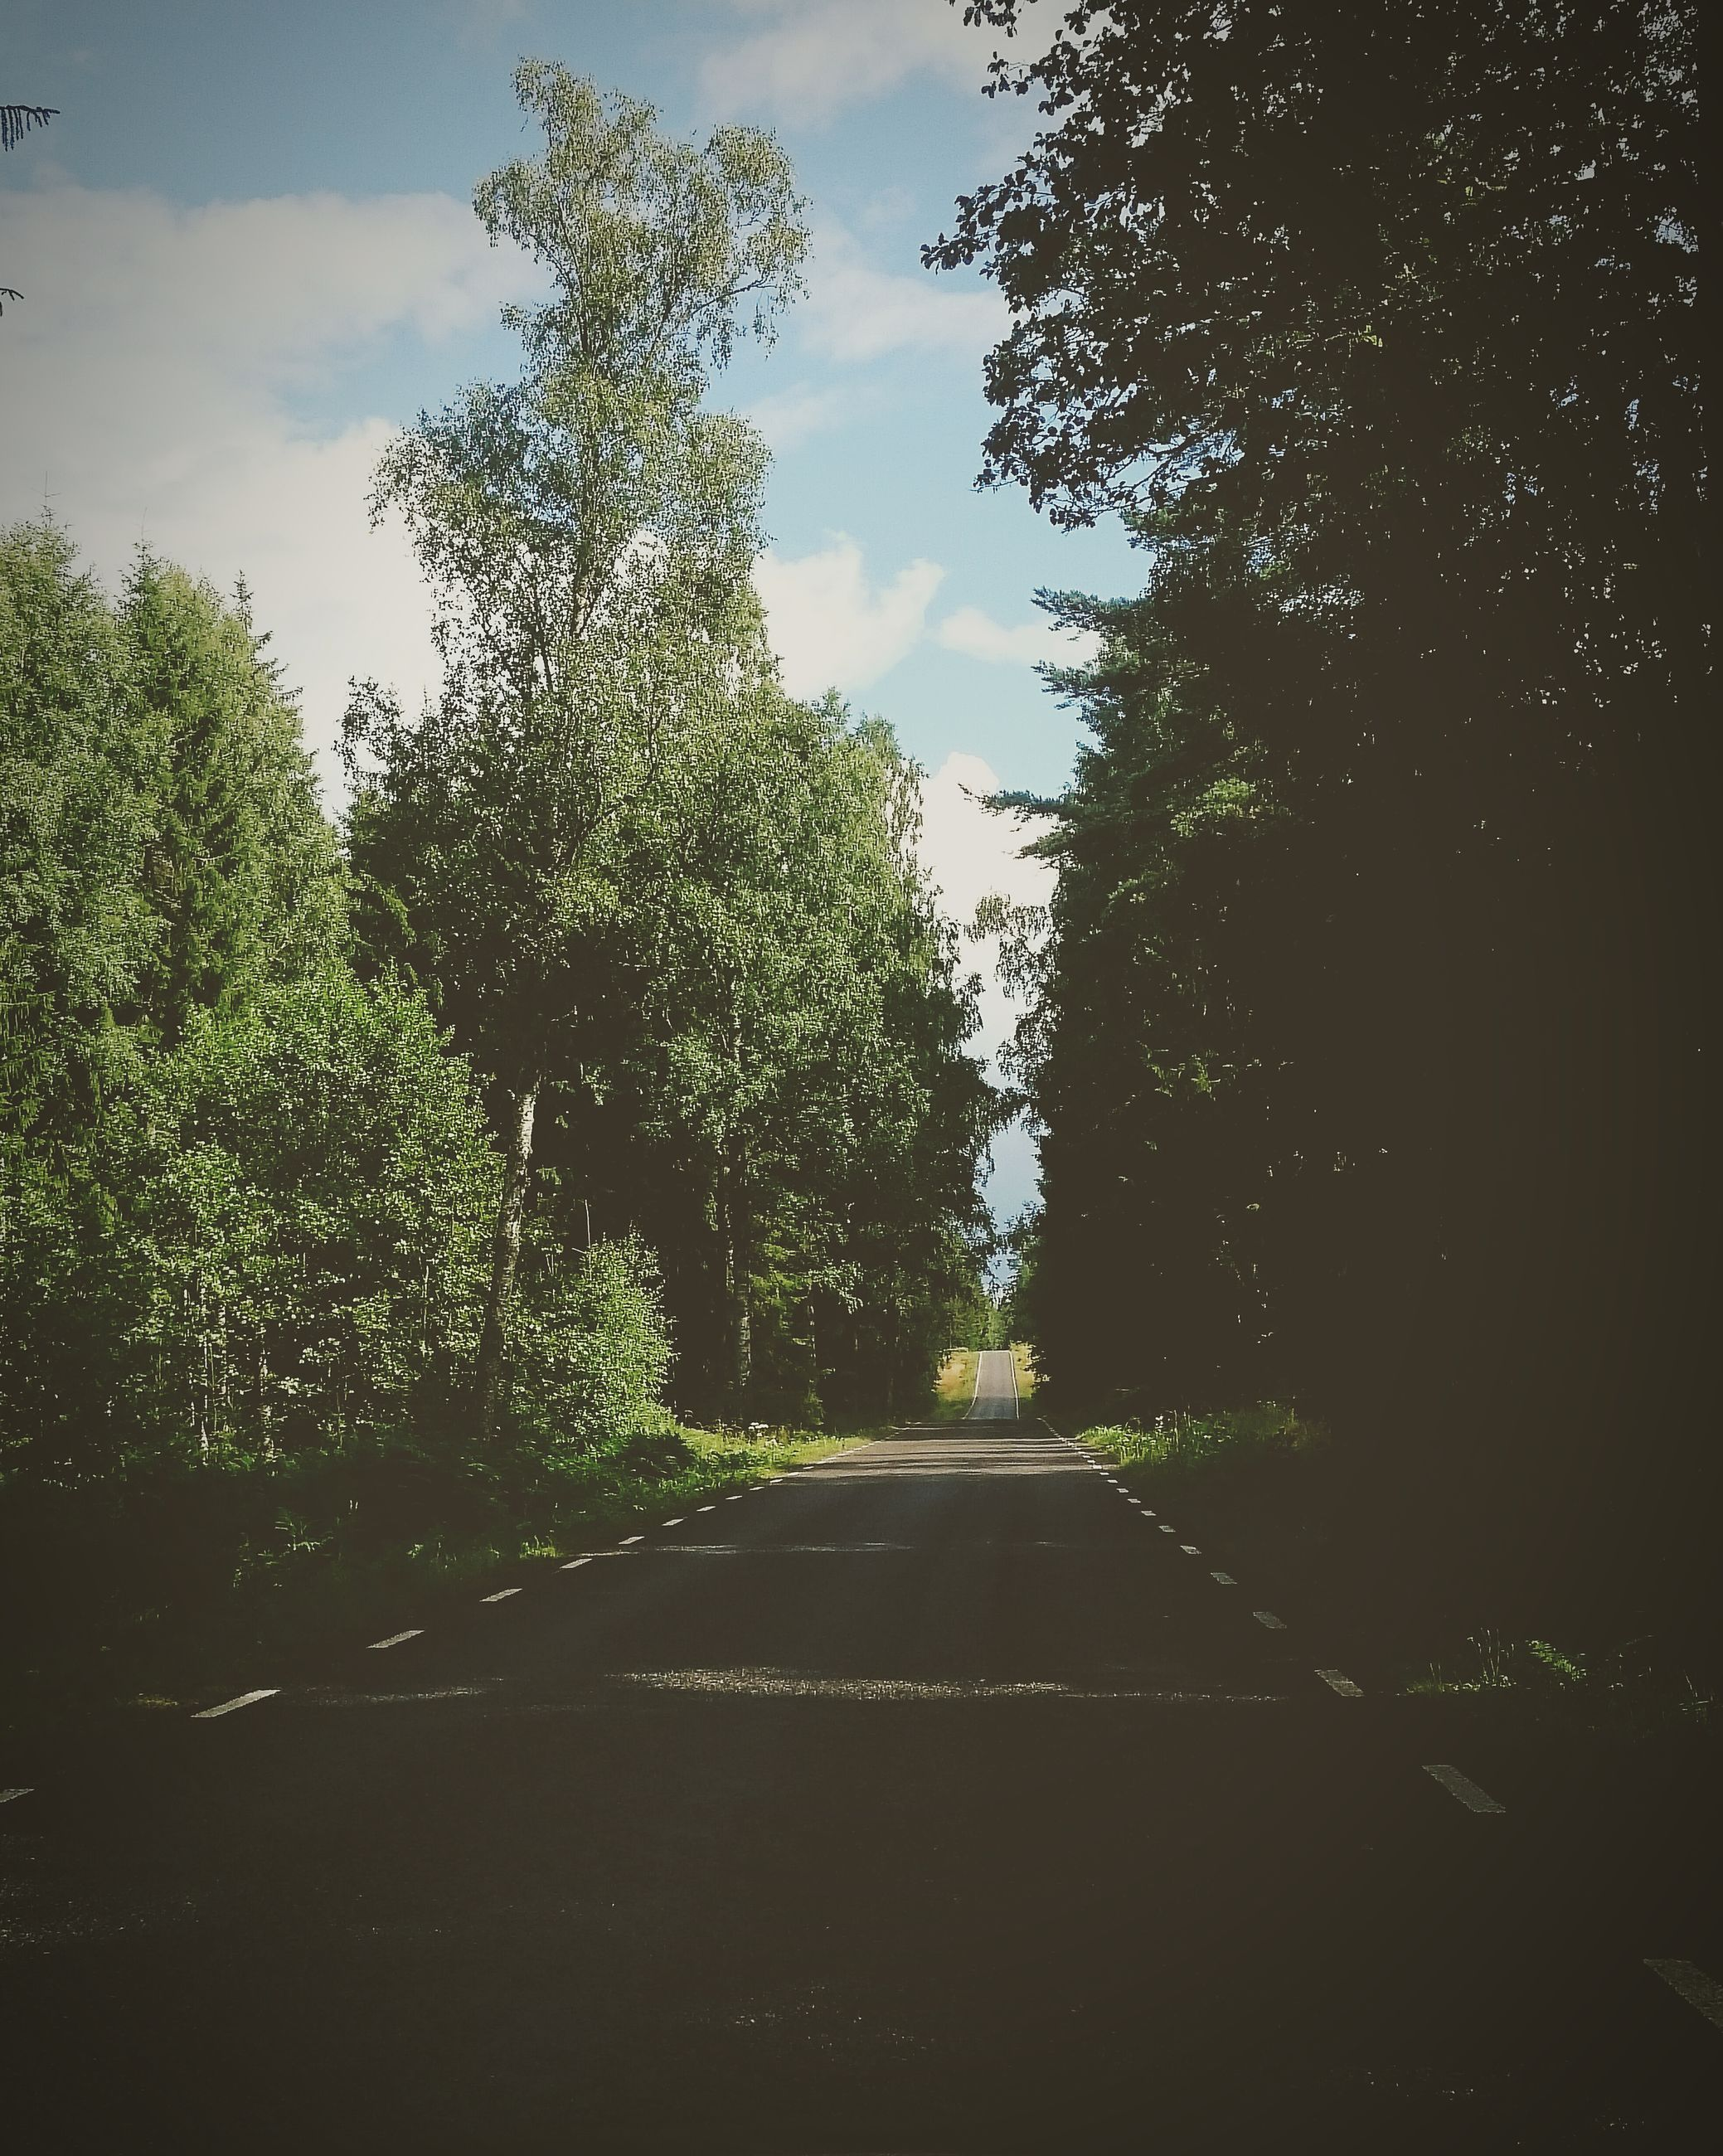 tree, road, the way forward, diminishing perspective, transportation, no people, day, outdoors, nature, sky, scenics, growth, landscape, beauty in nature